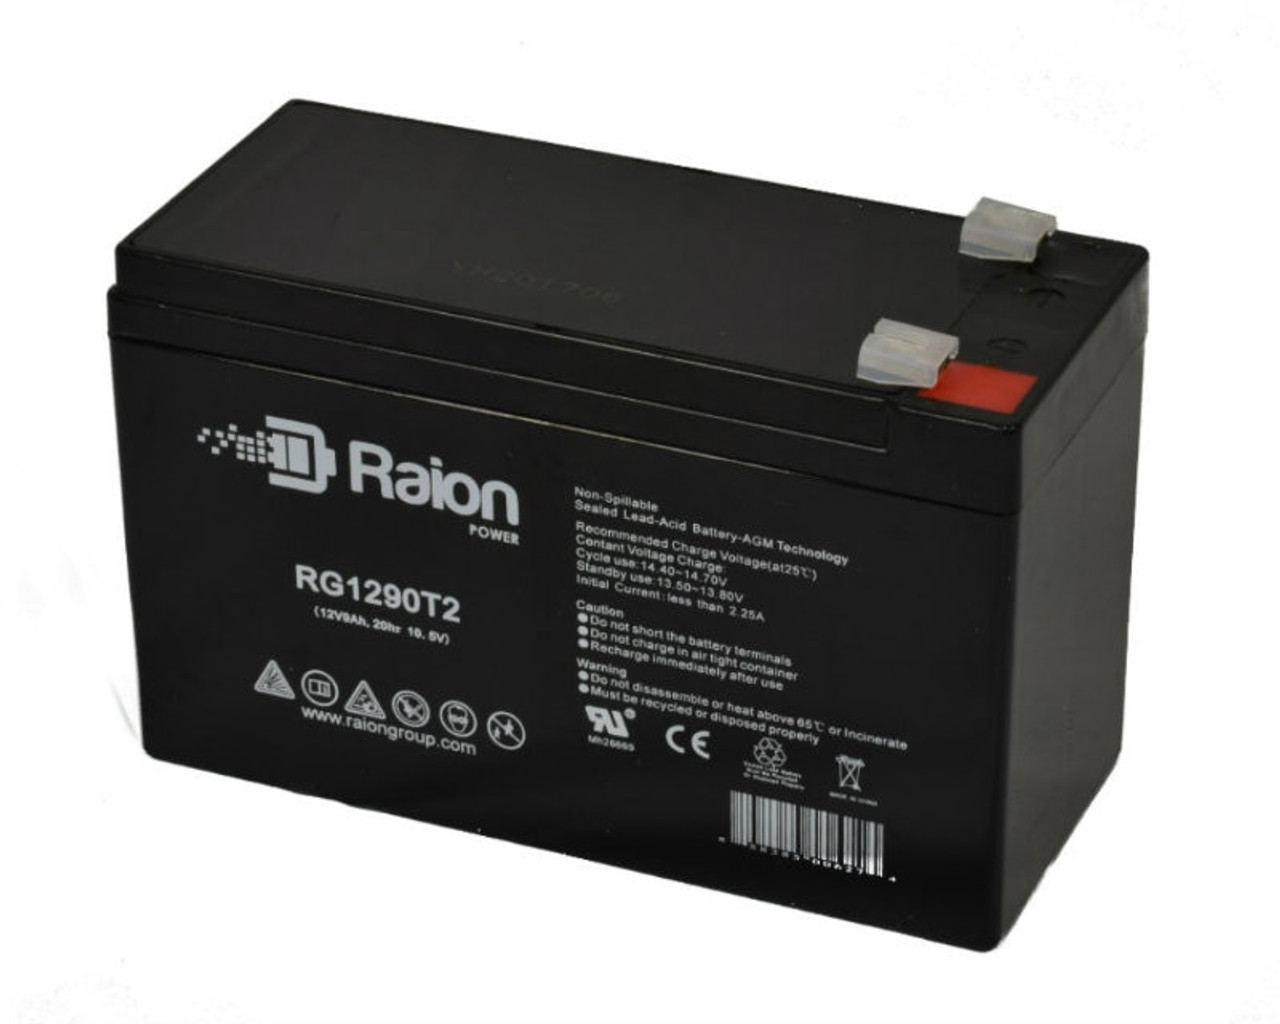 Raion Power RG1290T2 Replacement Battery for Potter Electric PFC-5008RG1290T2 Fire Alarm Control Panel